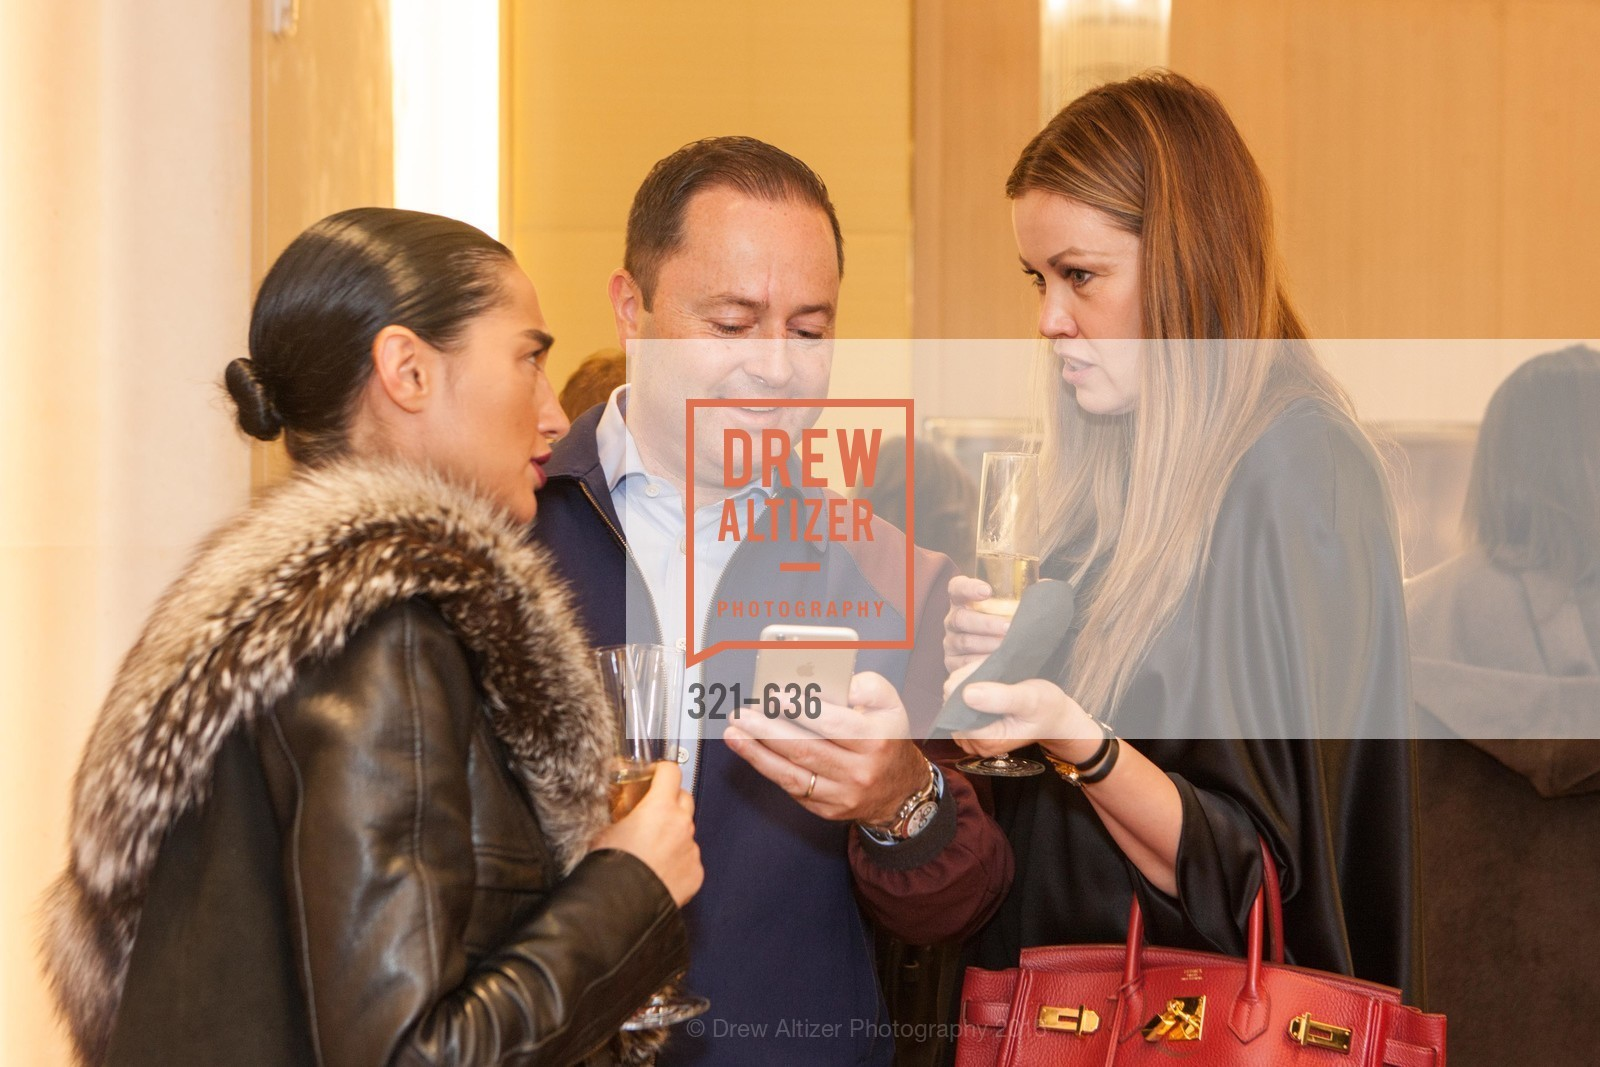 Olya Dzilikhova, Edward Dubrovsky, Tatiana Sorokko, Bulgari San Francisco Presents WINE, WHISKEY & WATCHES, Bulgari San Francisco. 200 Stockton Street, December 8th, 2015,Drew Altizer, Drew Altizer Photography, full-service event agency, private events, San Francisco photographer, photographer California